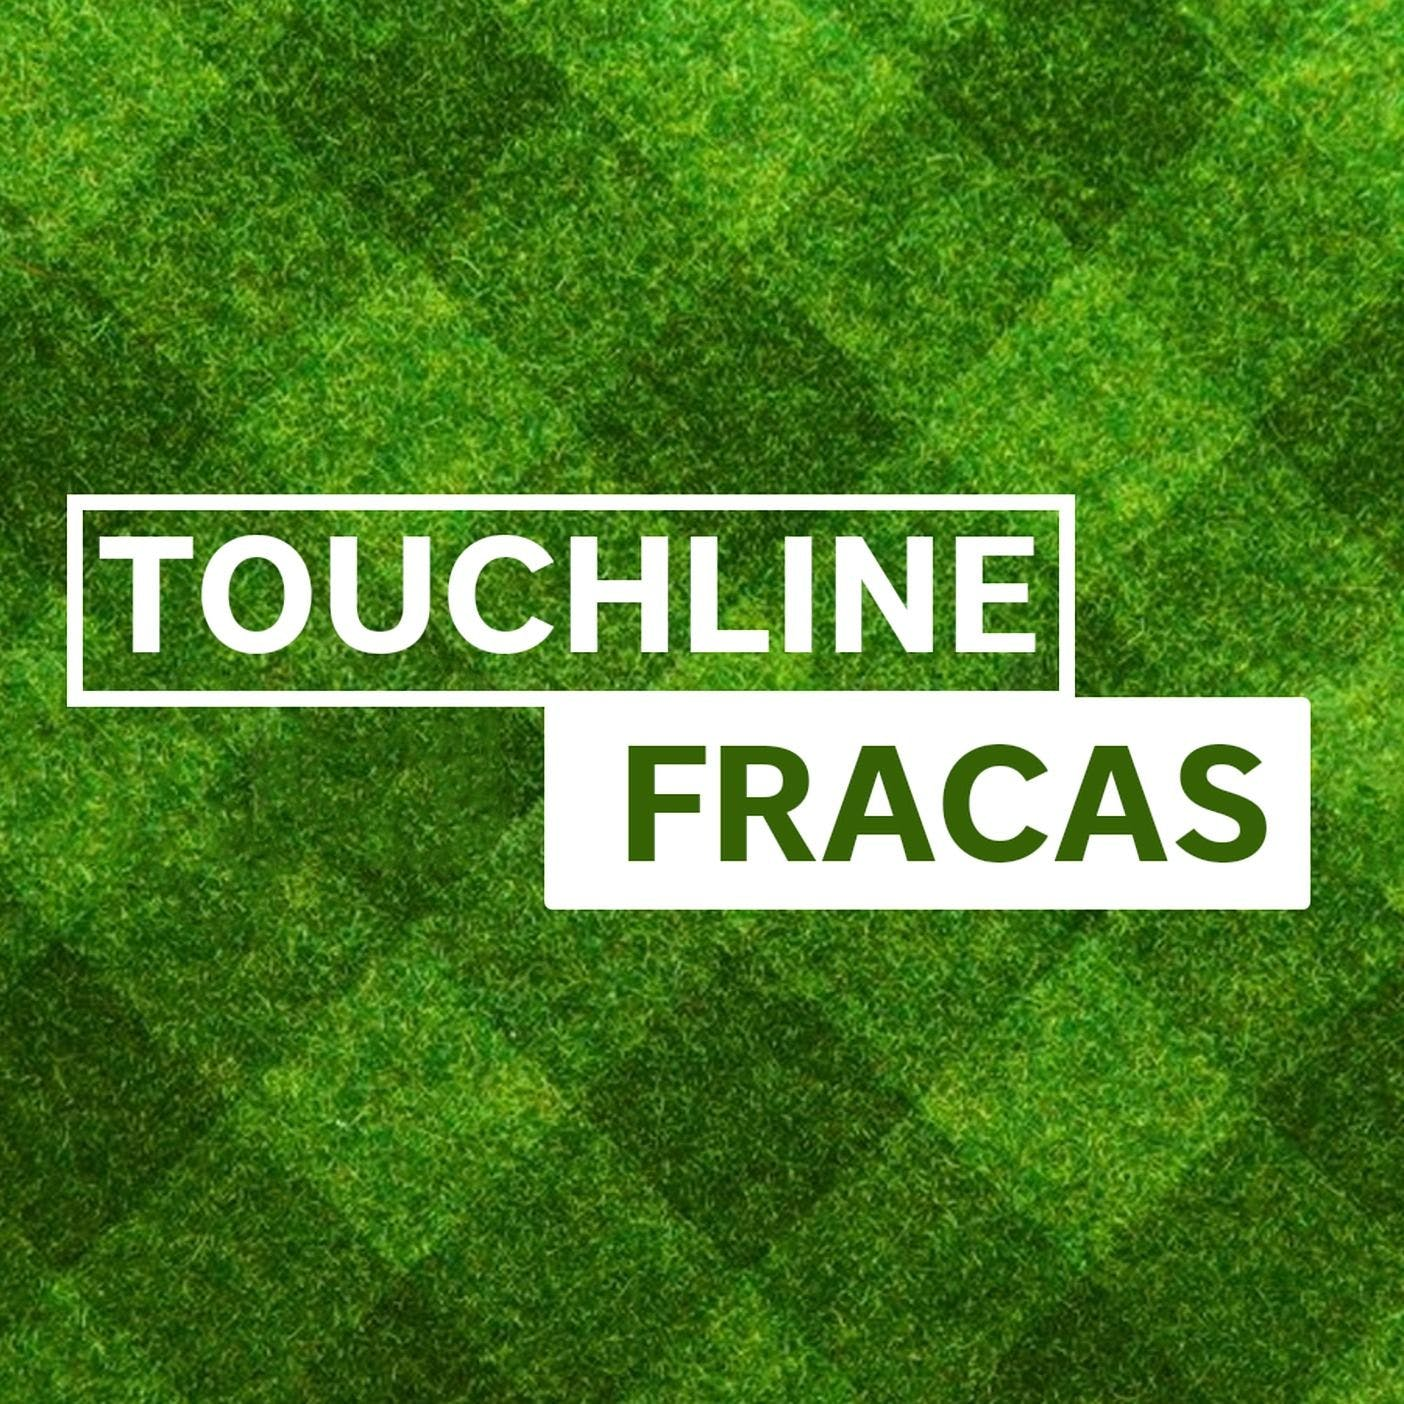 Touchline Fracas - We want our club back